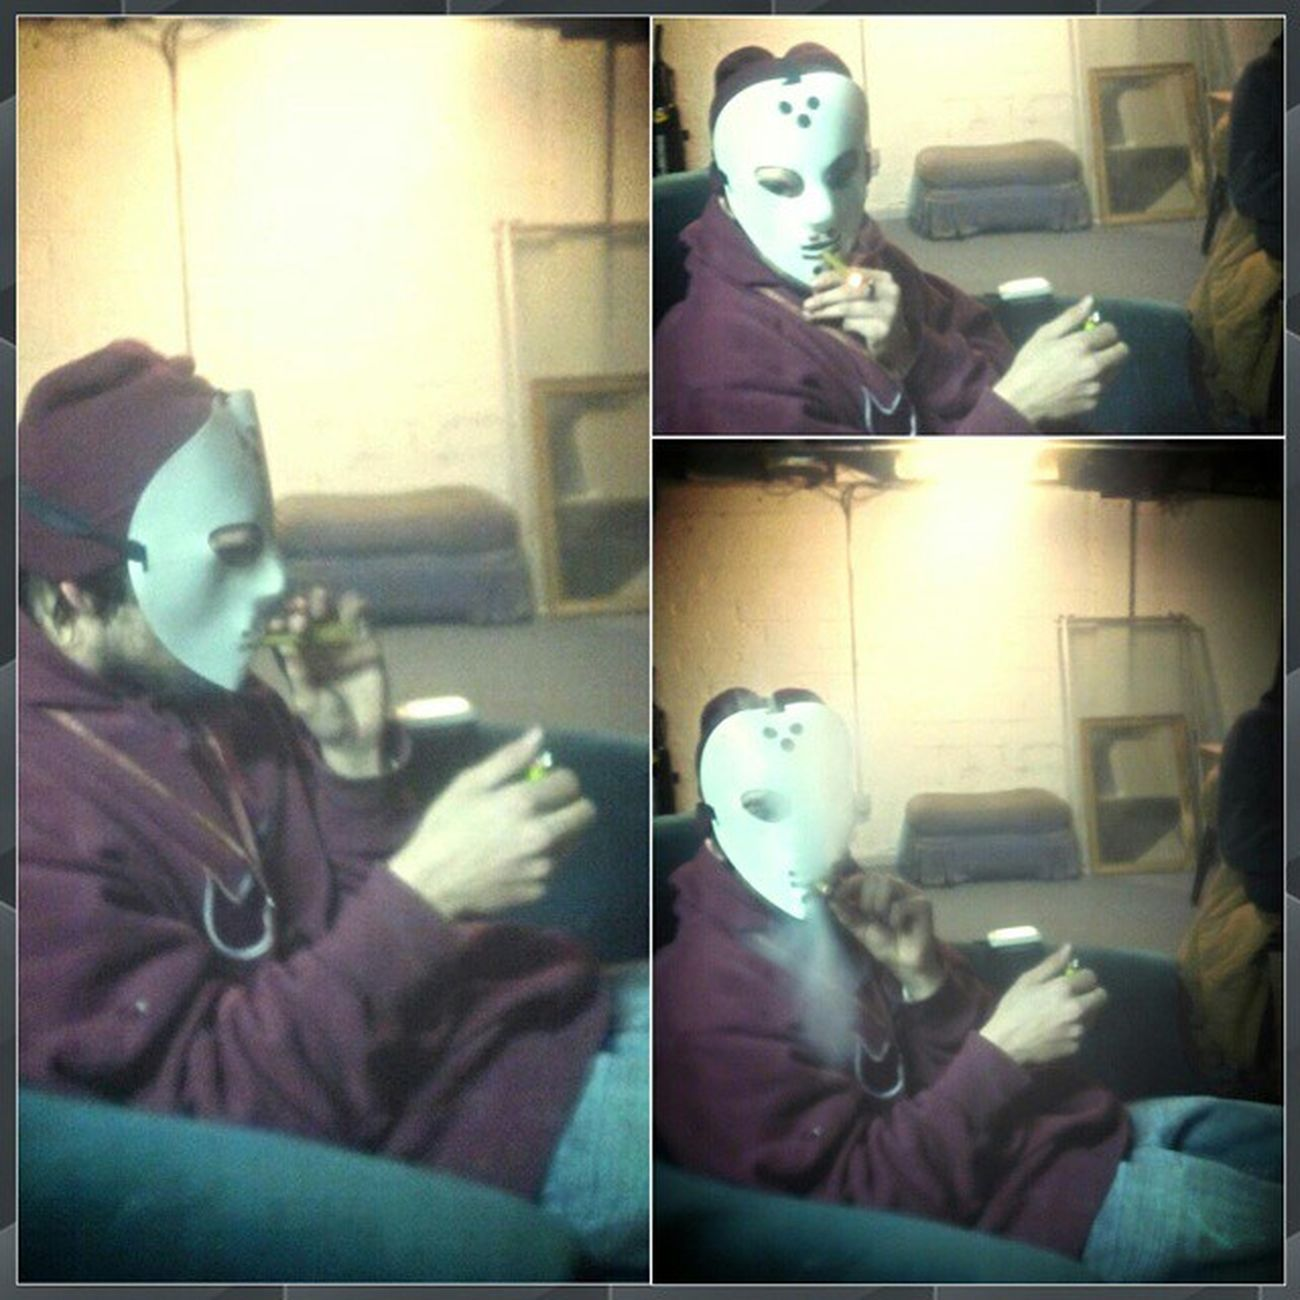 Puffin on that strong! Blazeup BluntSesh Stonerselfie Stonernation Swishers Sour Medicated Topshelf Qualitypot Ganja HippieSHIT TheStonedJason Mask 420 515 DMI *LMS*